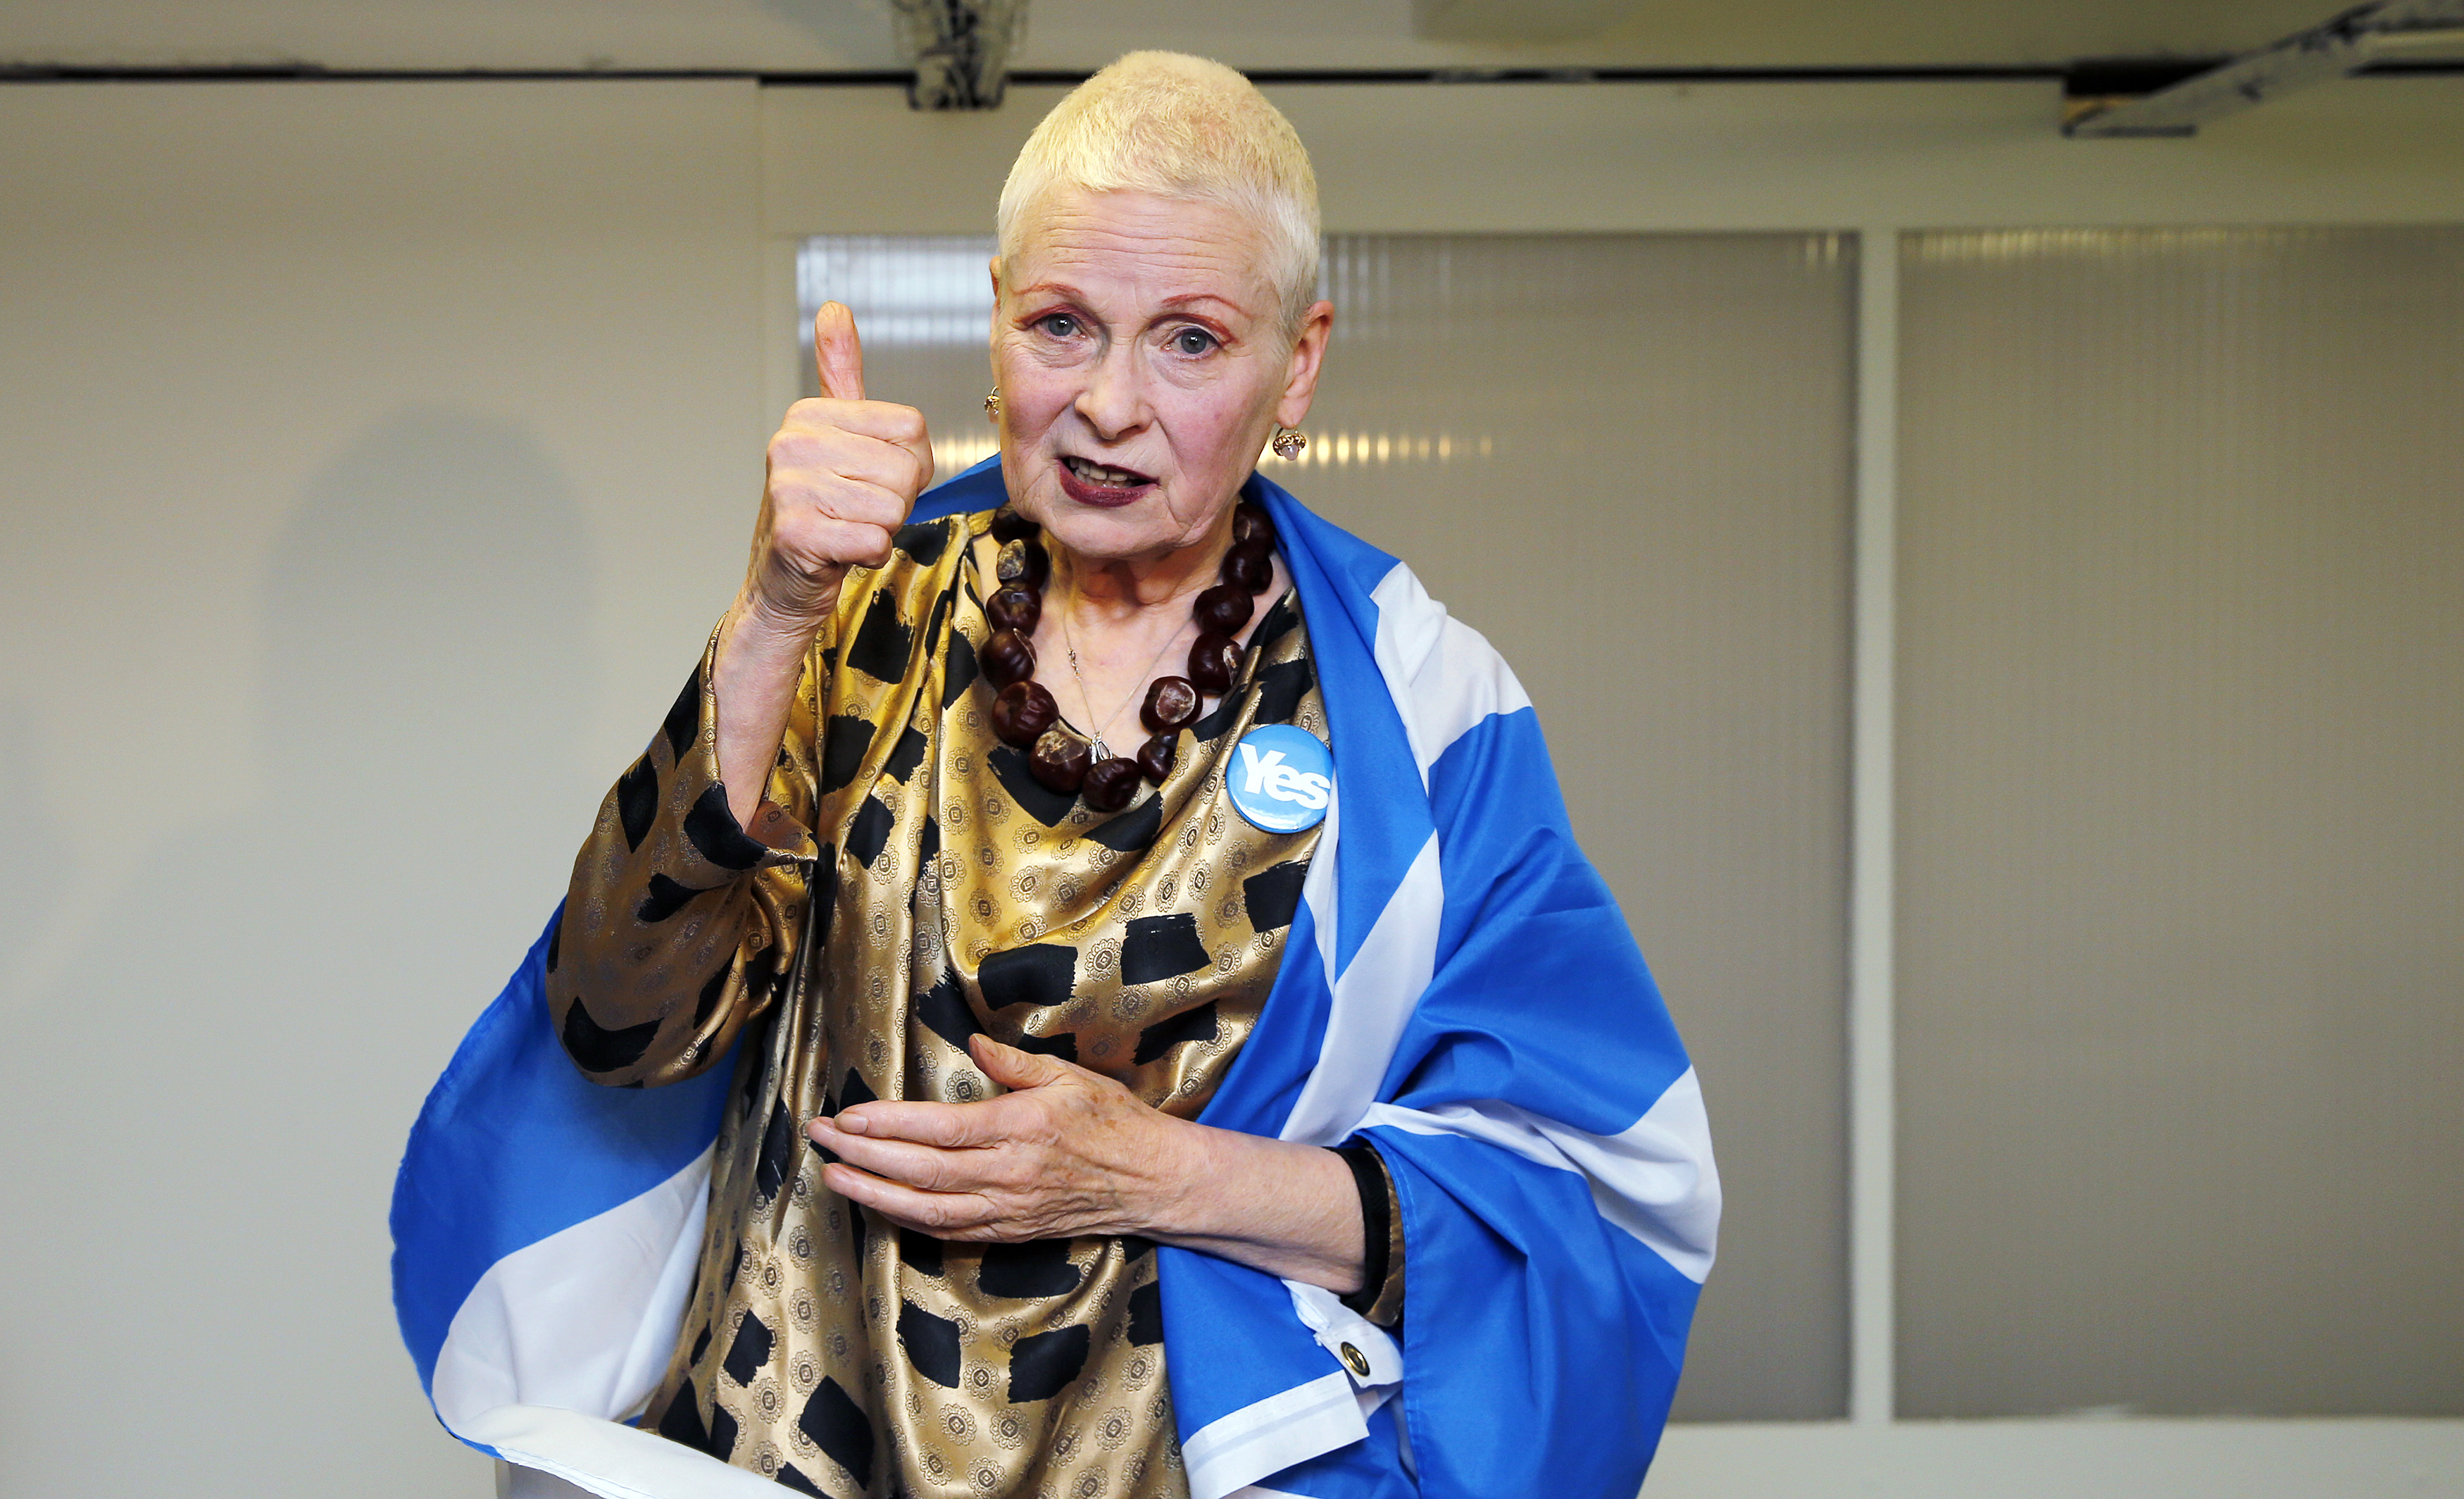 Vivienne Westwood wears a  YES  badge and Scottish flag backstage before the presentation of her Vivienne Westwood Red Label Spring/Summer 2015 collection during London Fashion Week on Sept. 14, 2014.